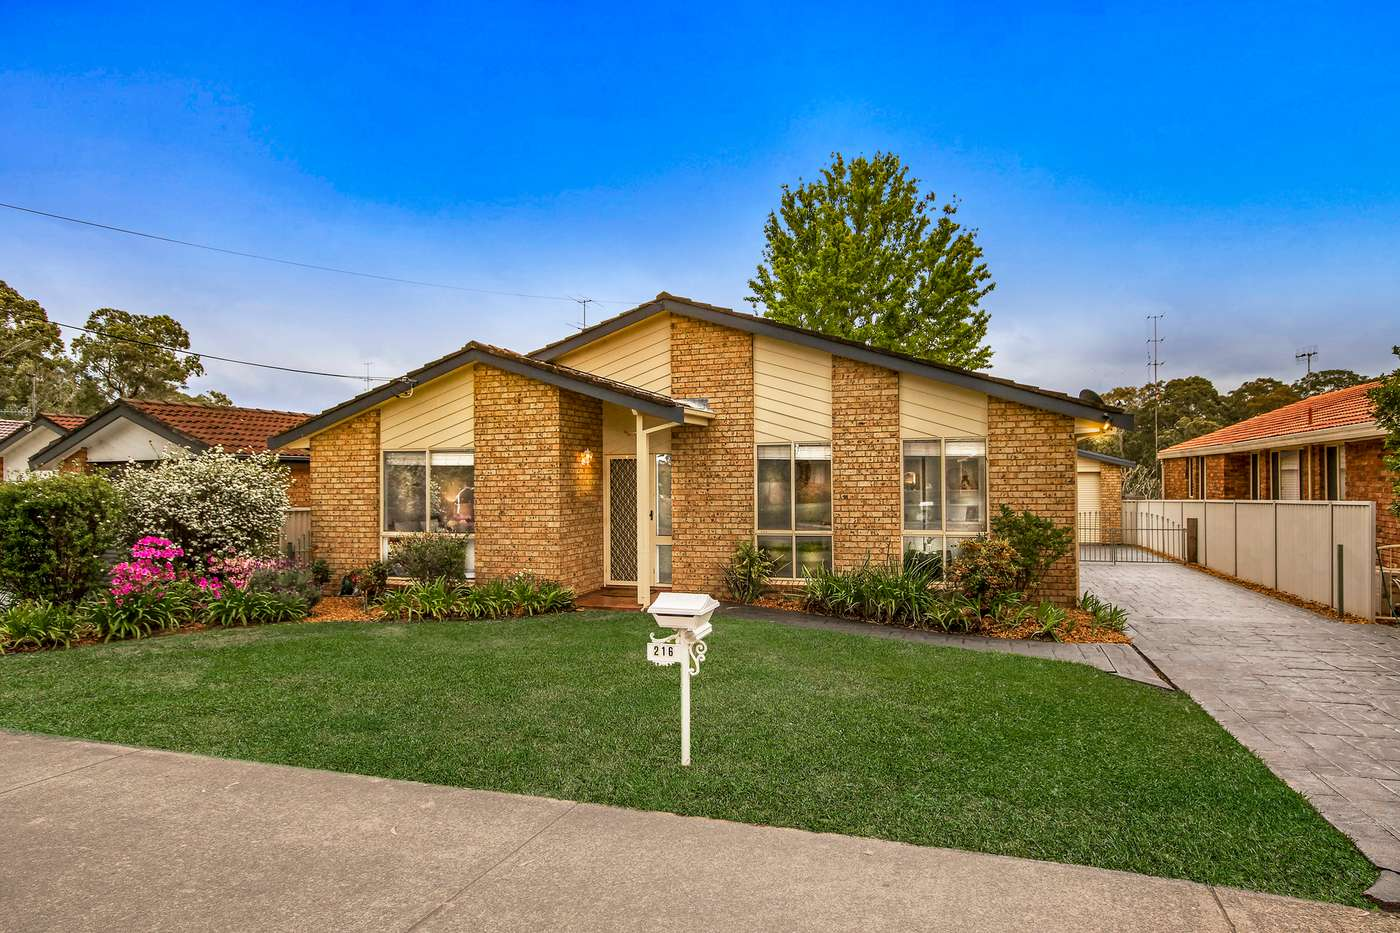 Main view of Homely house listing, 216 Pollock Avenue, Wyong, NSW 2259